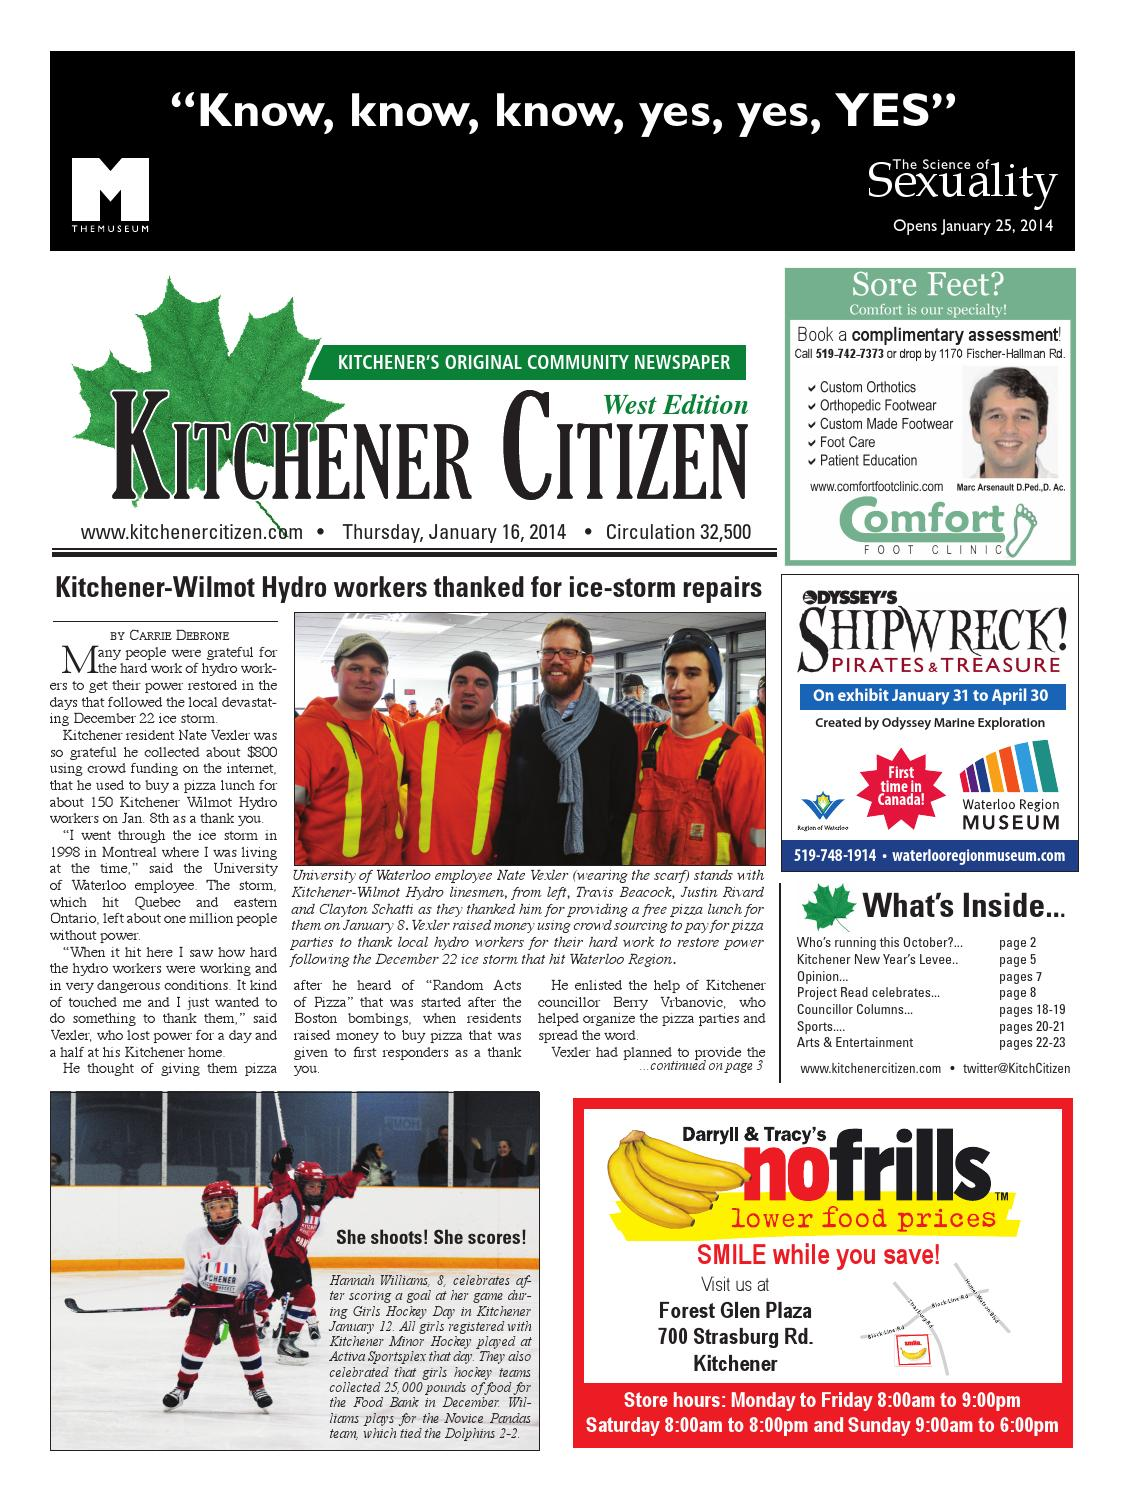 Kitchener Citizen - West Edition - January 2014 by Kitchener Citizen ...